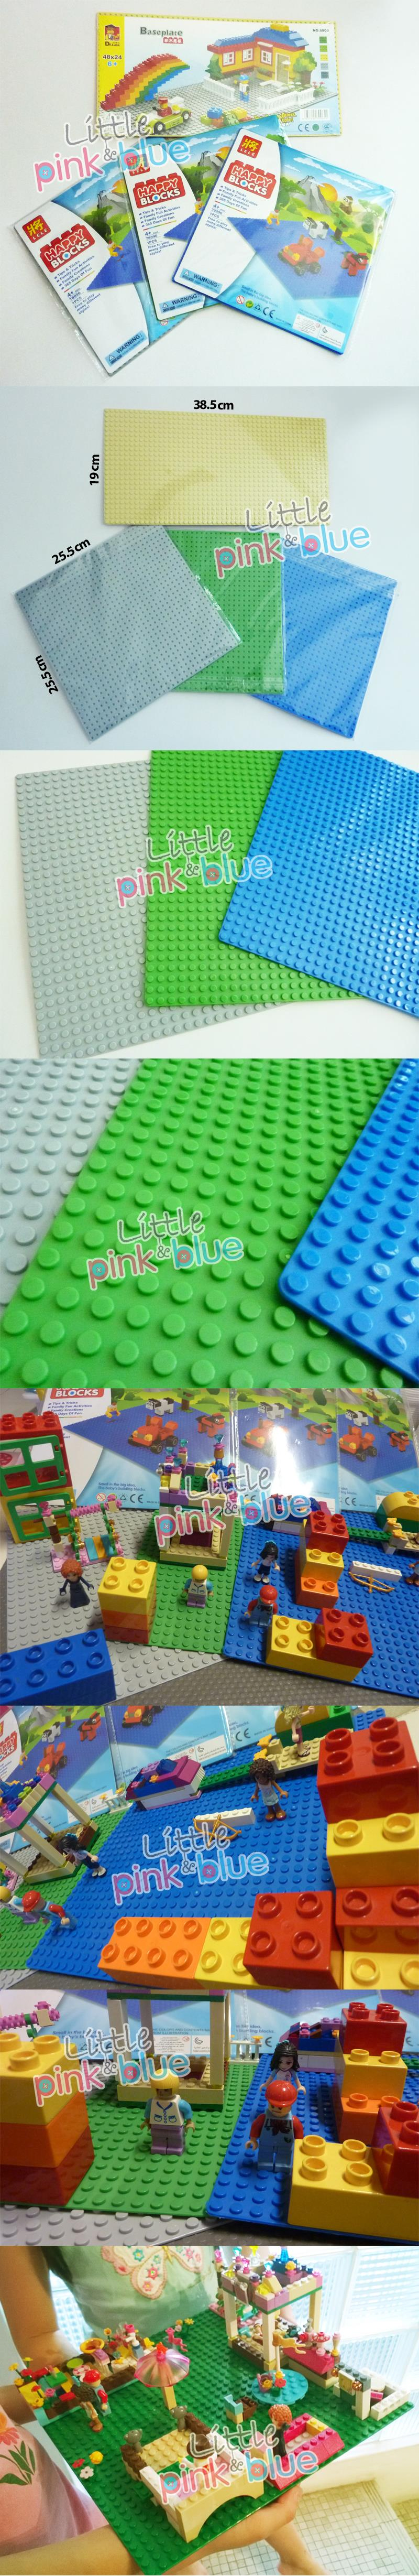 Lego Brick Compatible Base Plates